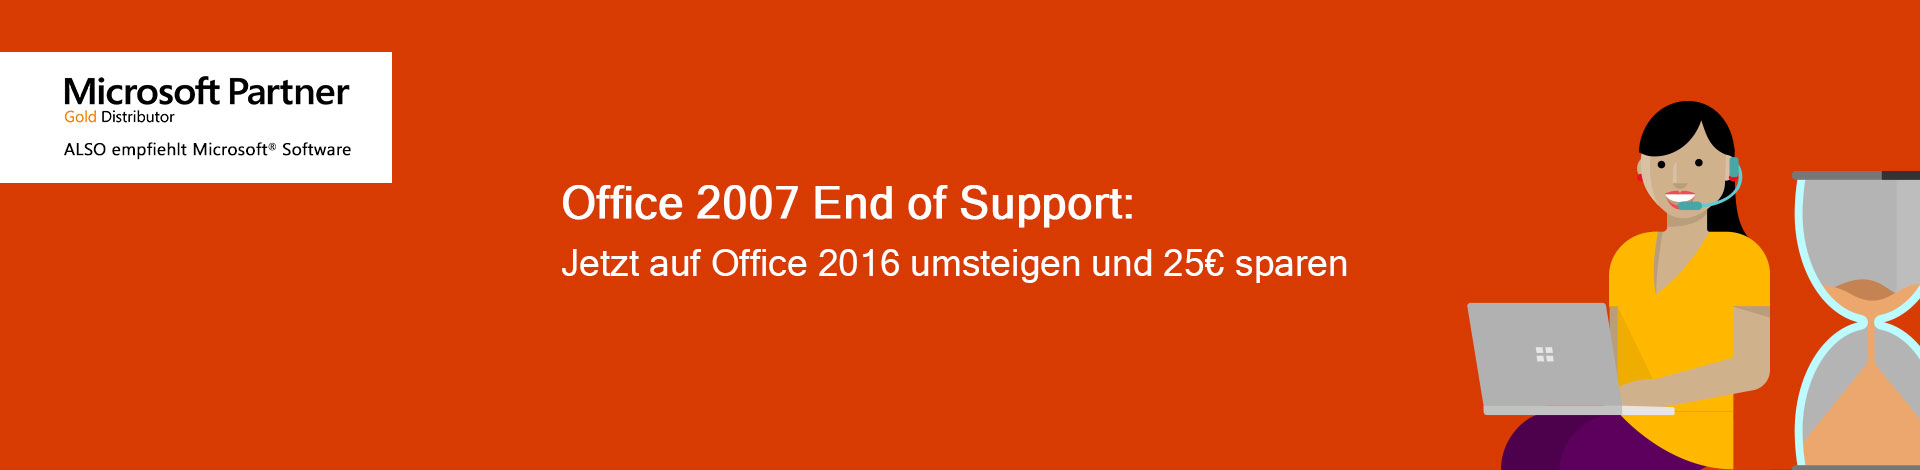 Microsoft Office 2007 End of Support